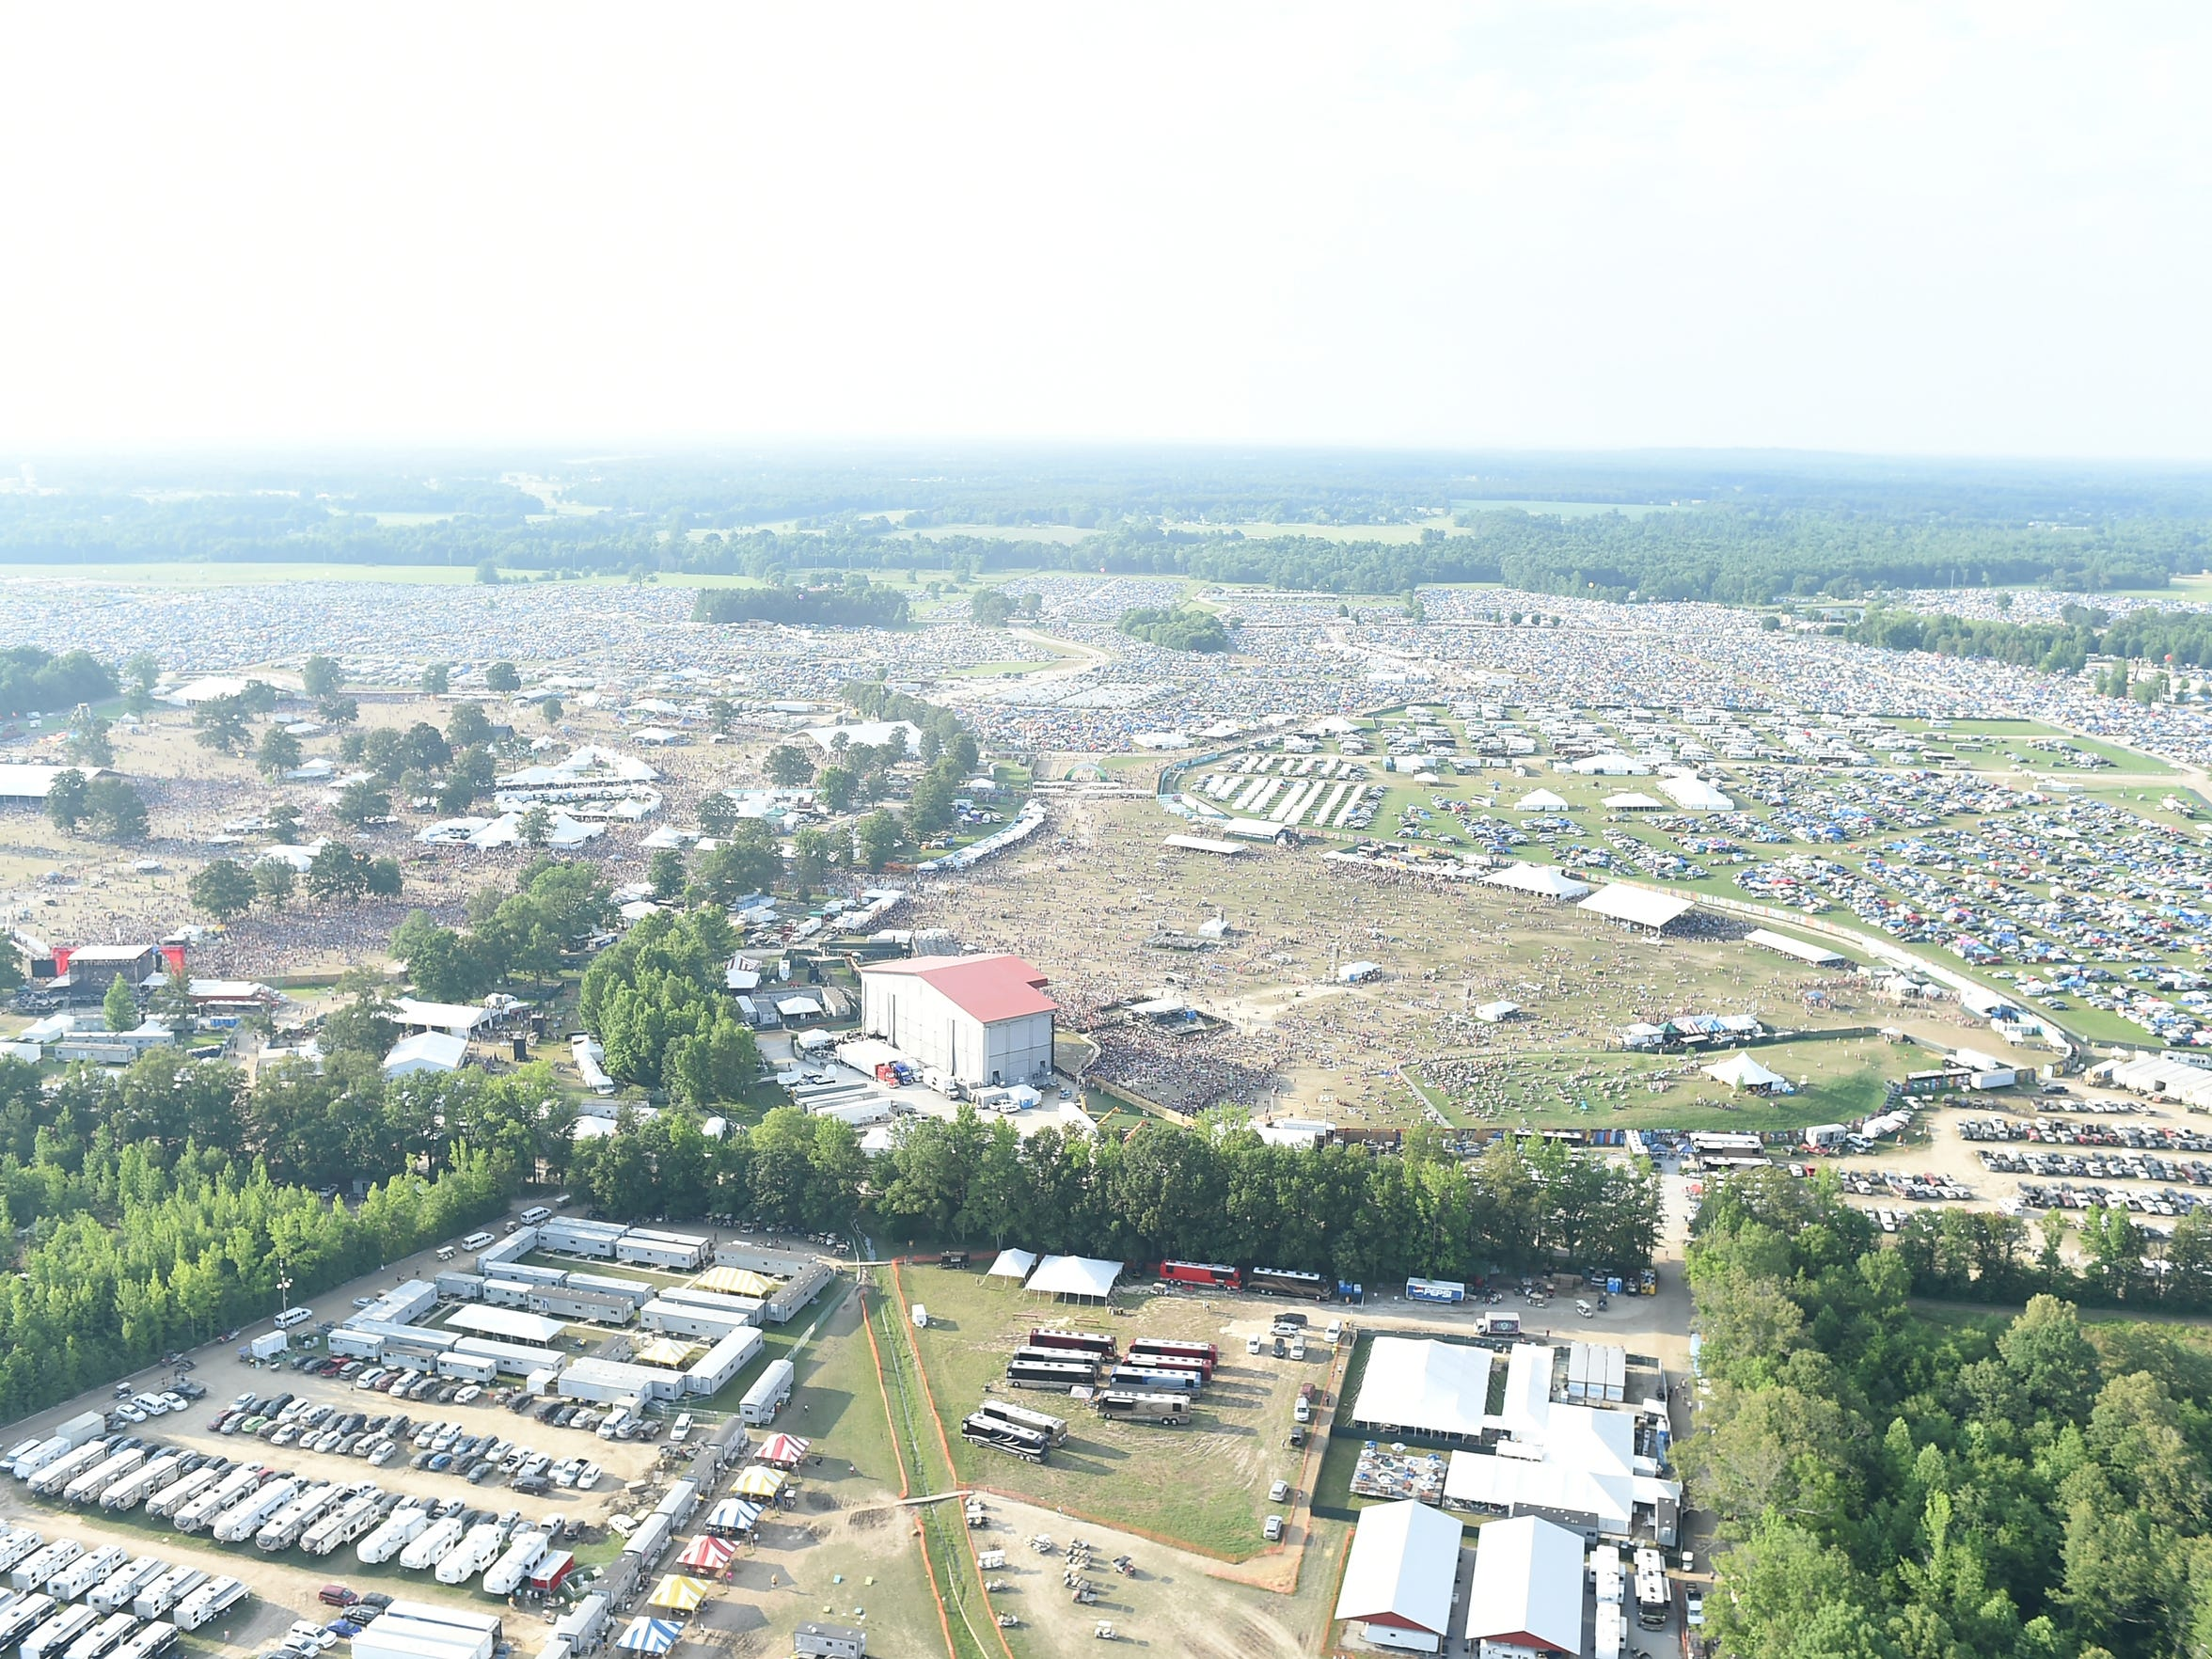 Aerial view of the 2014 Bonnaroo Music & Arts Festival in Manchester, Tennessee.